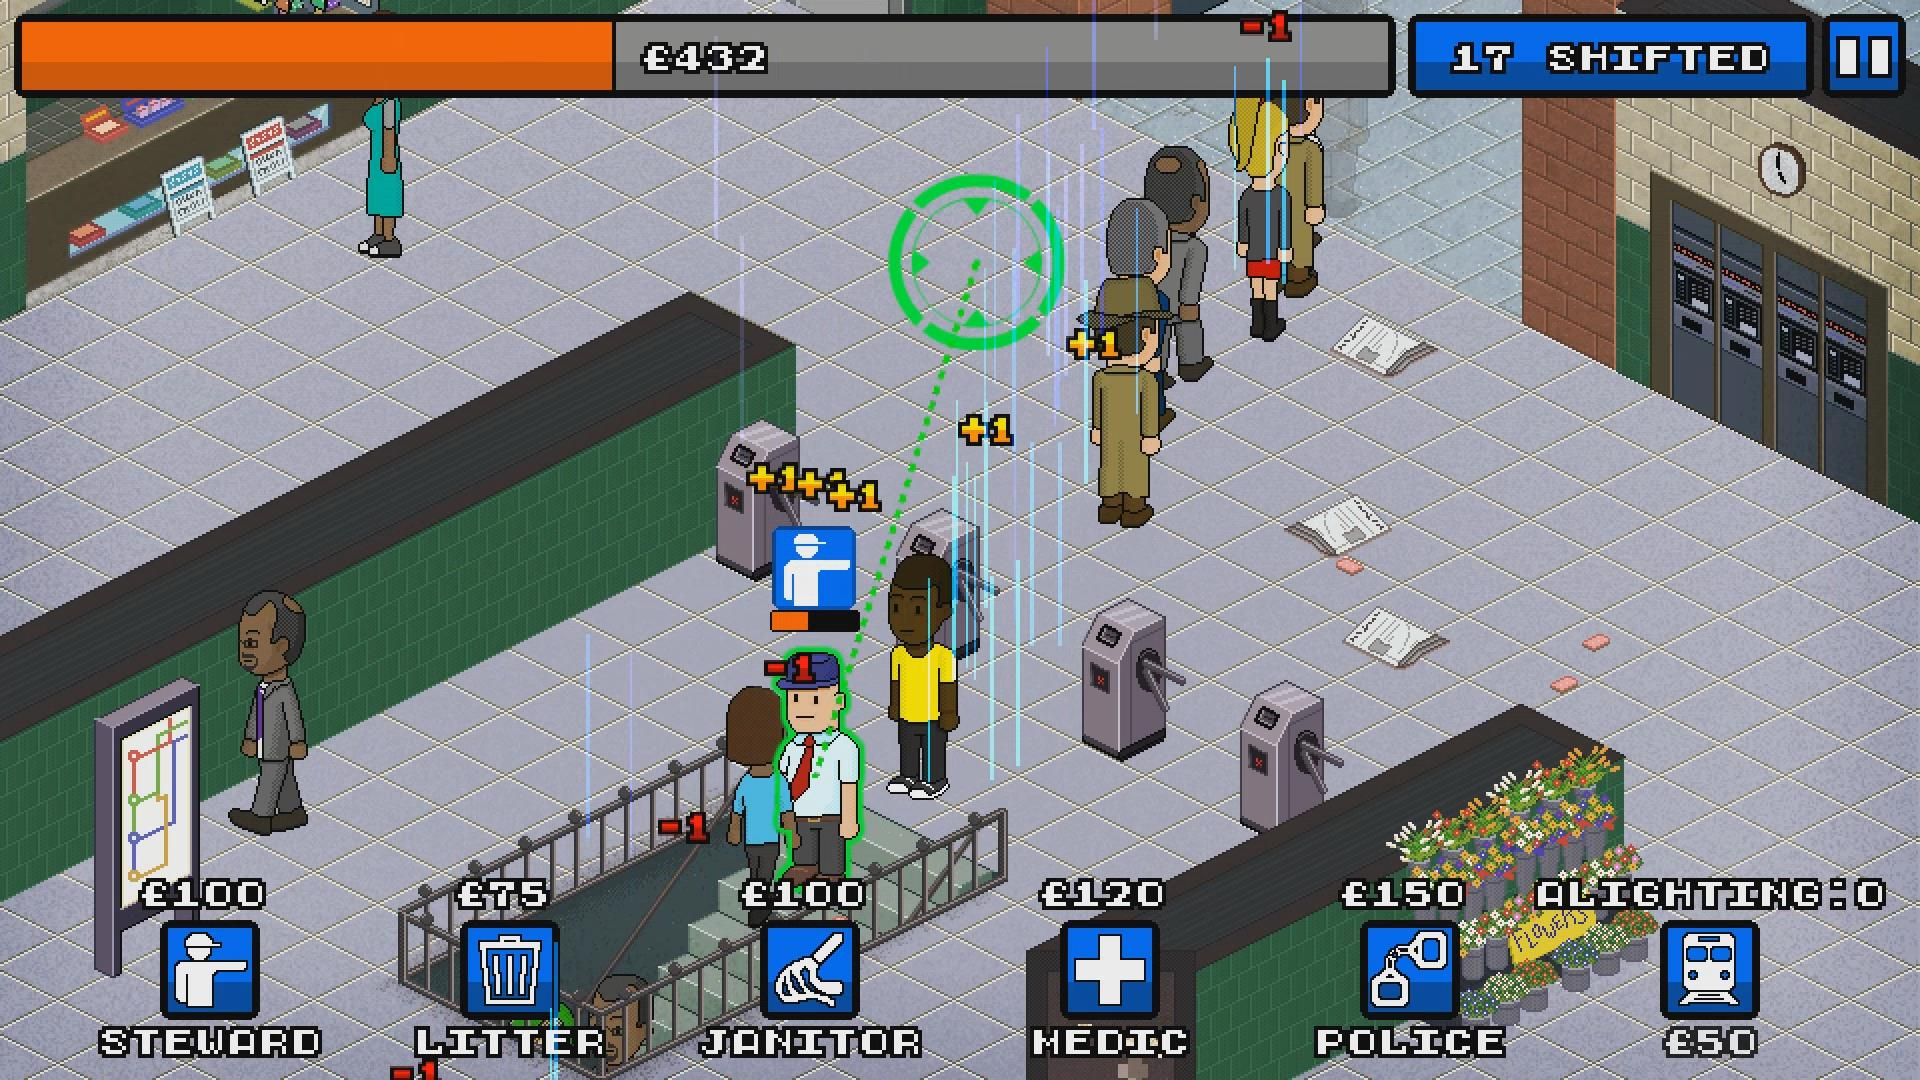 'Commute-em-up' is now a thing.